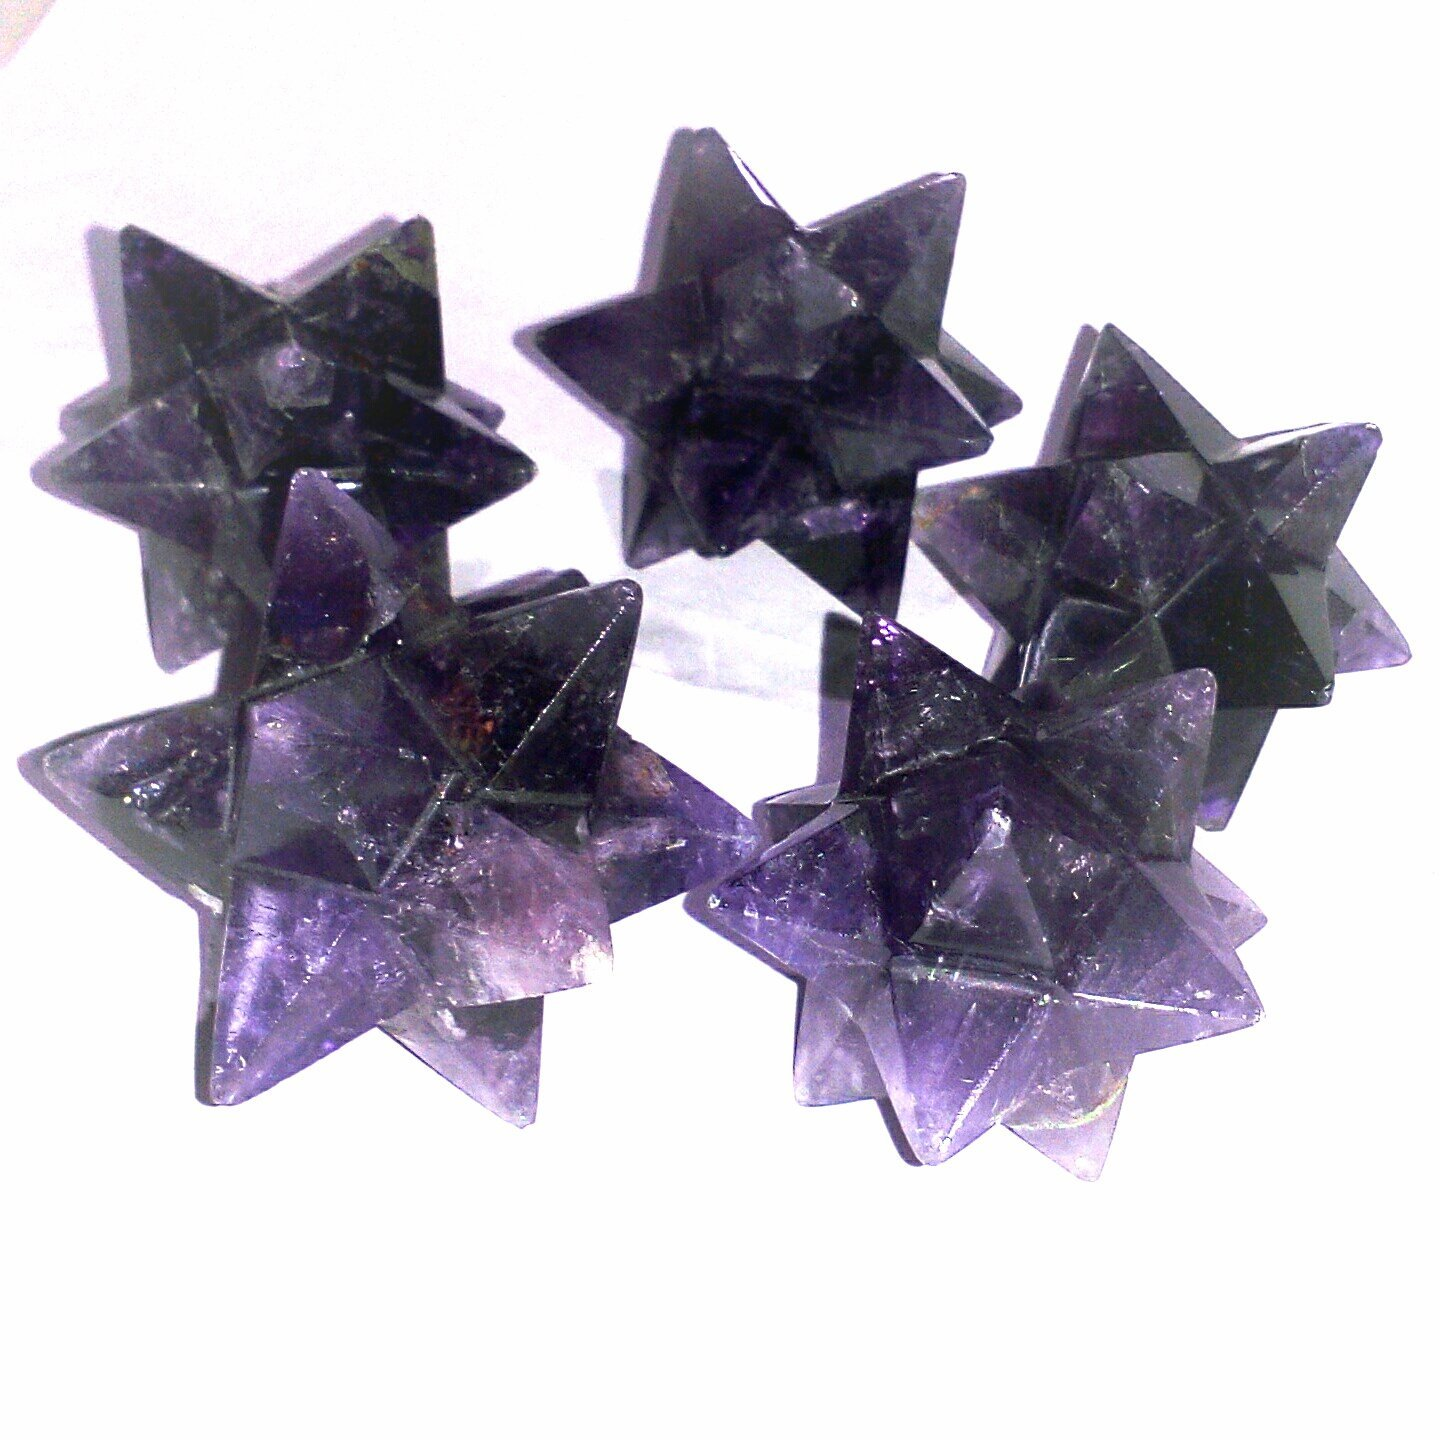 Primary image for Amethyst 12 Point Hand Carved Merkaba Star 5 pcs Decorative Home reiki Healing